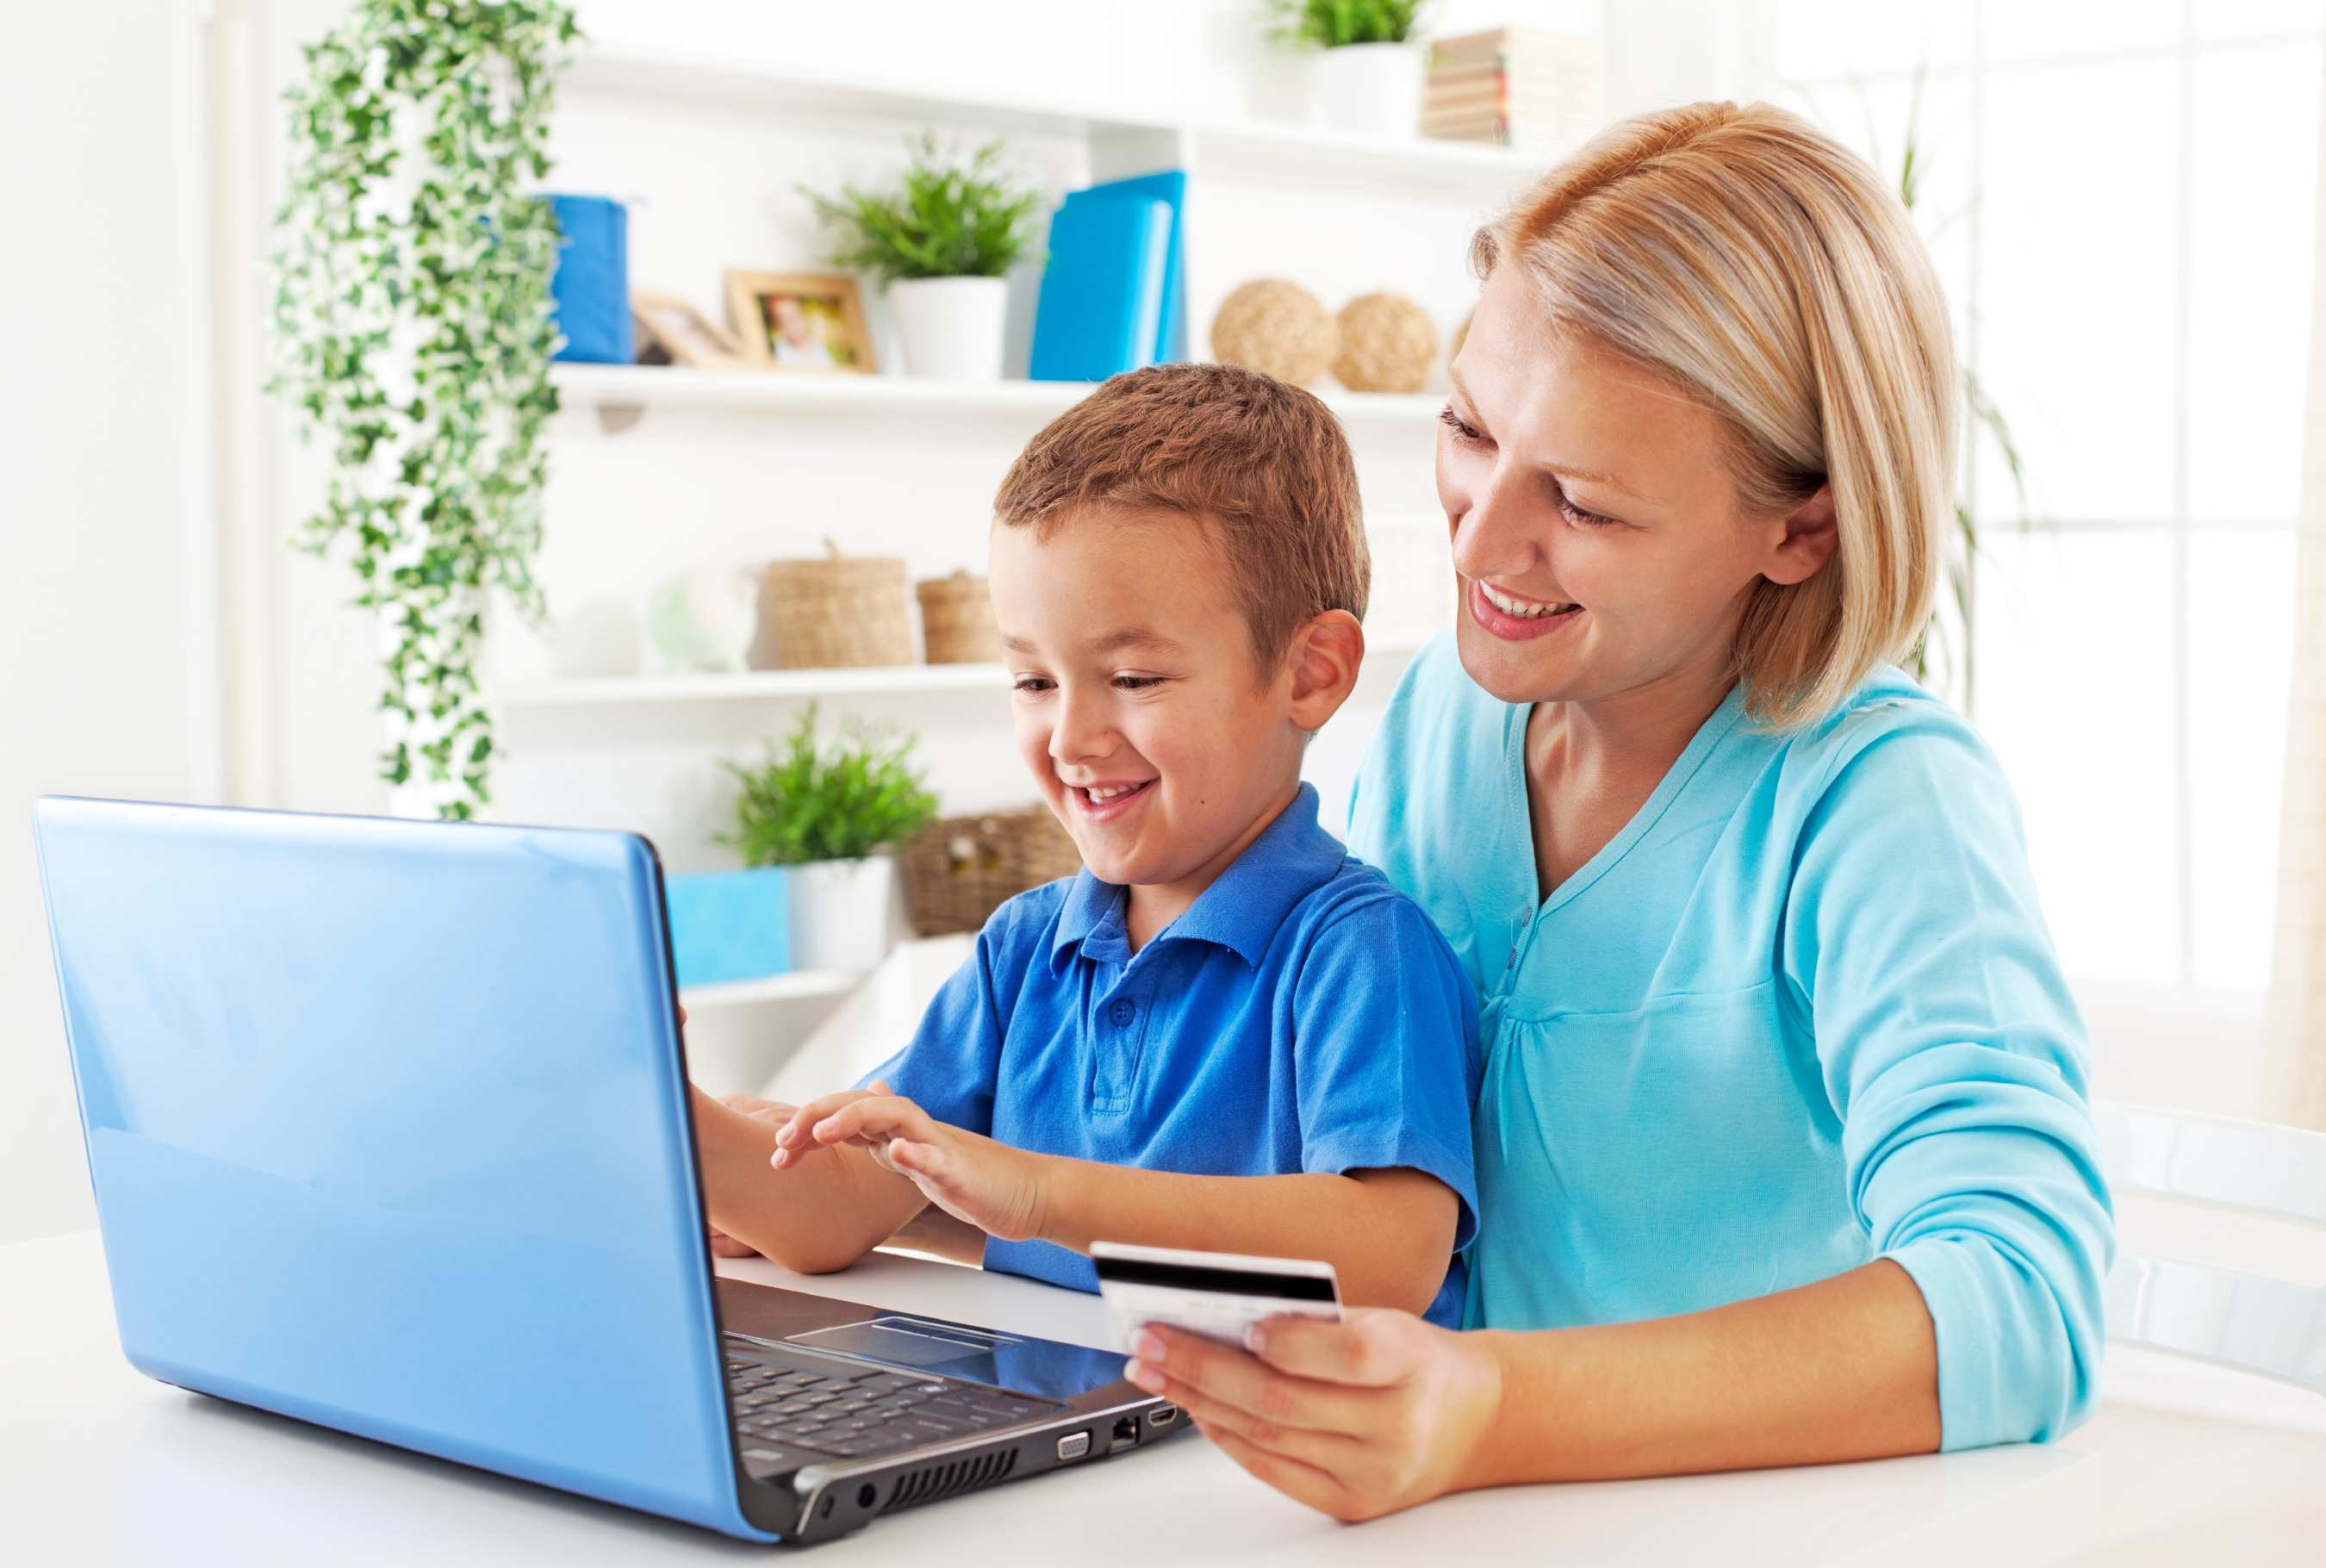 Mom helping boy on computer